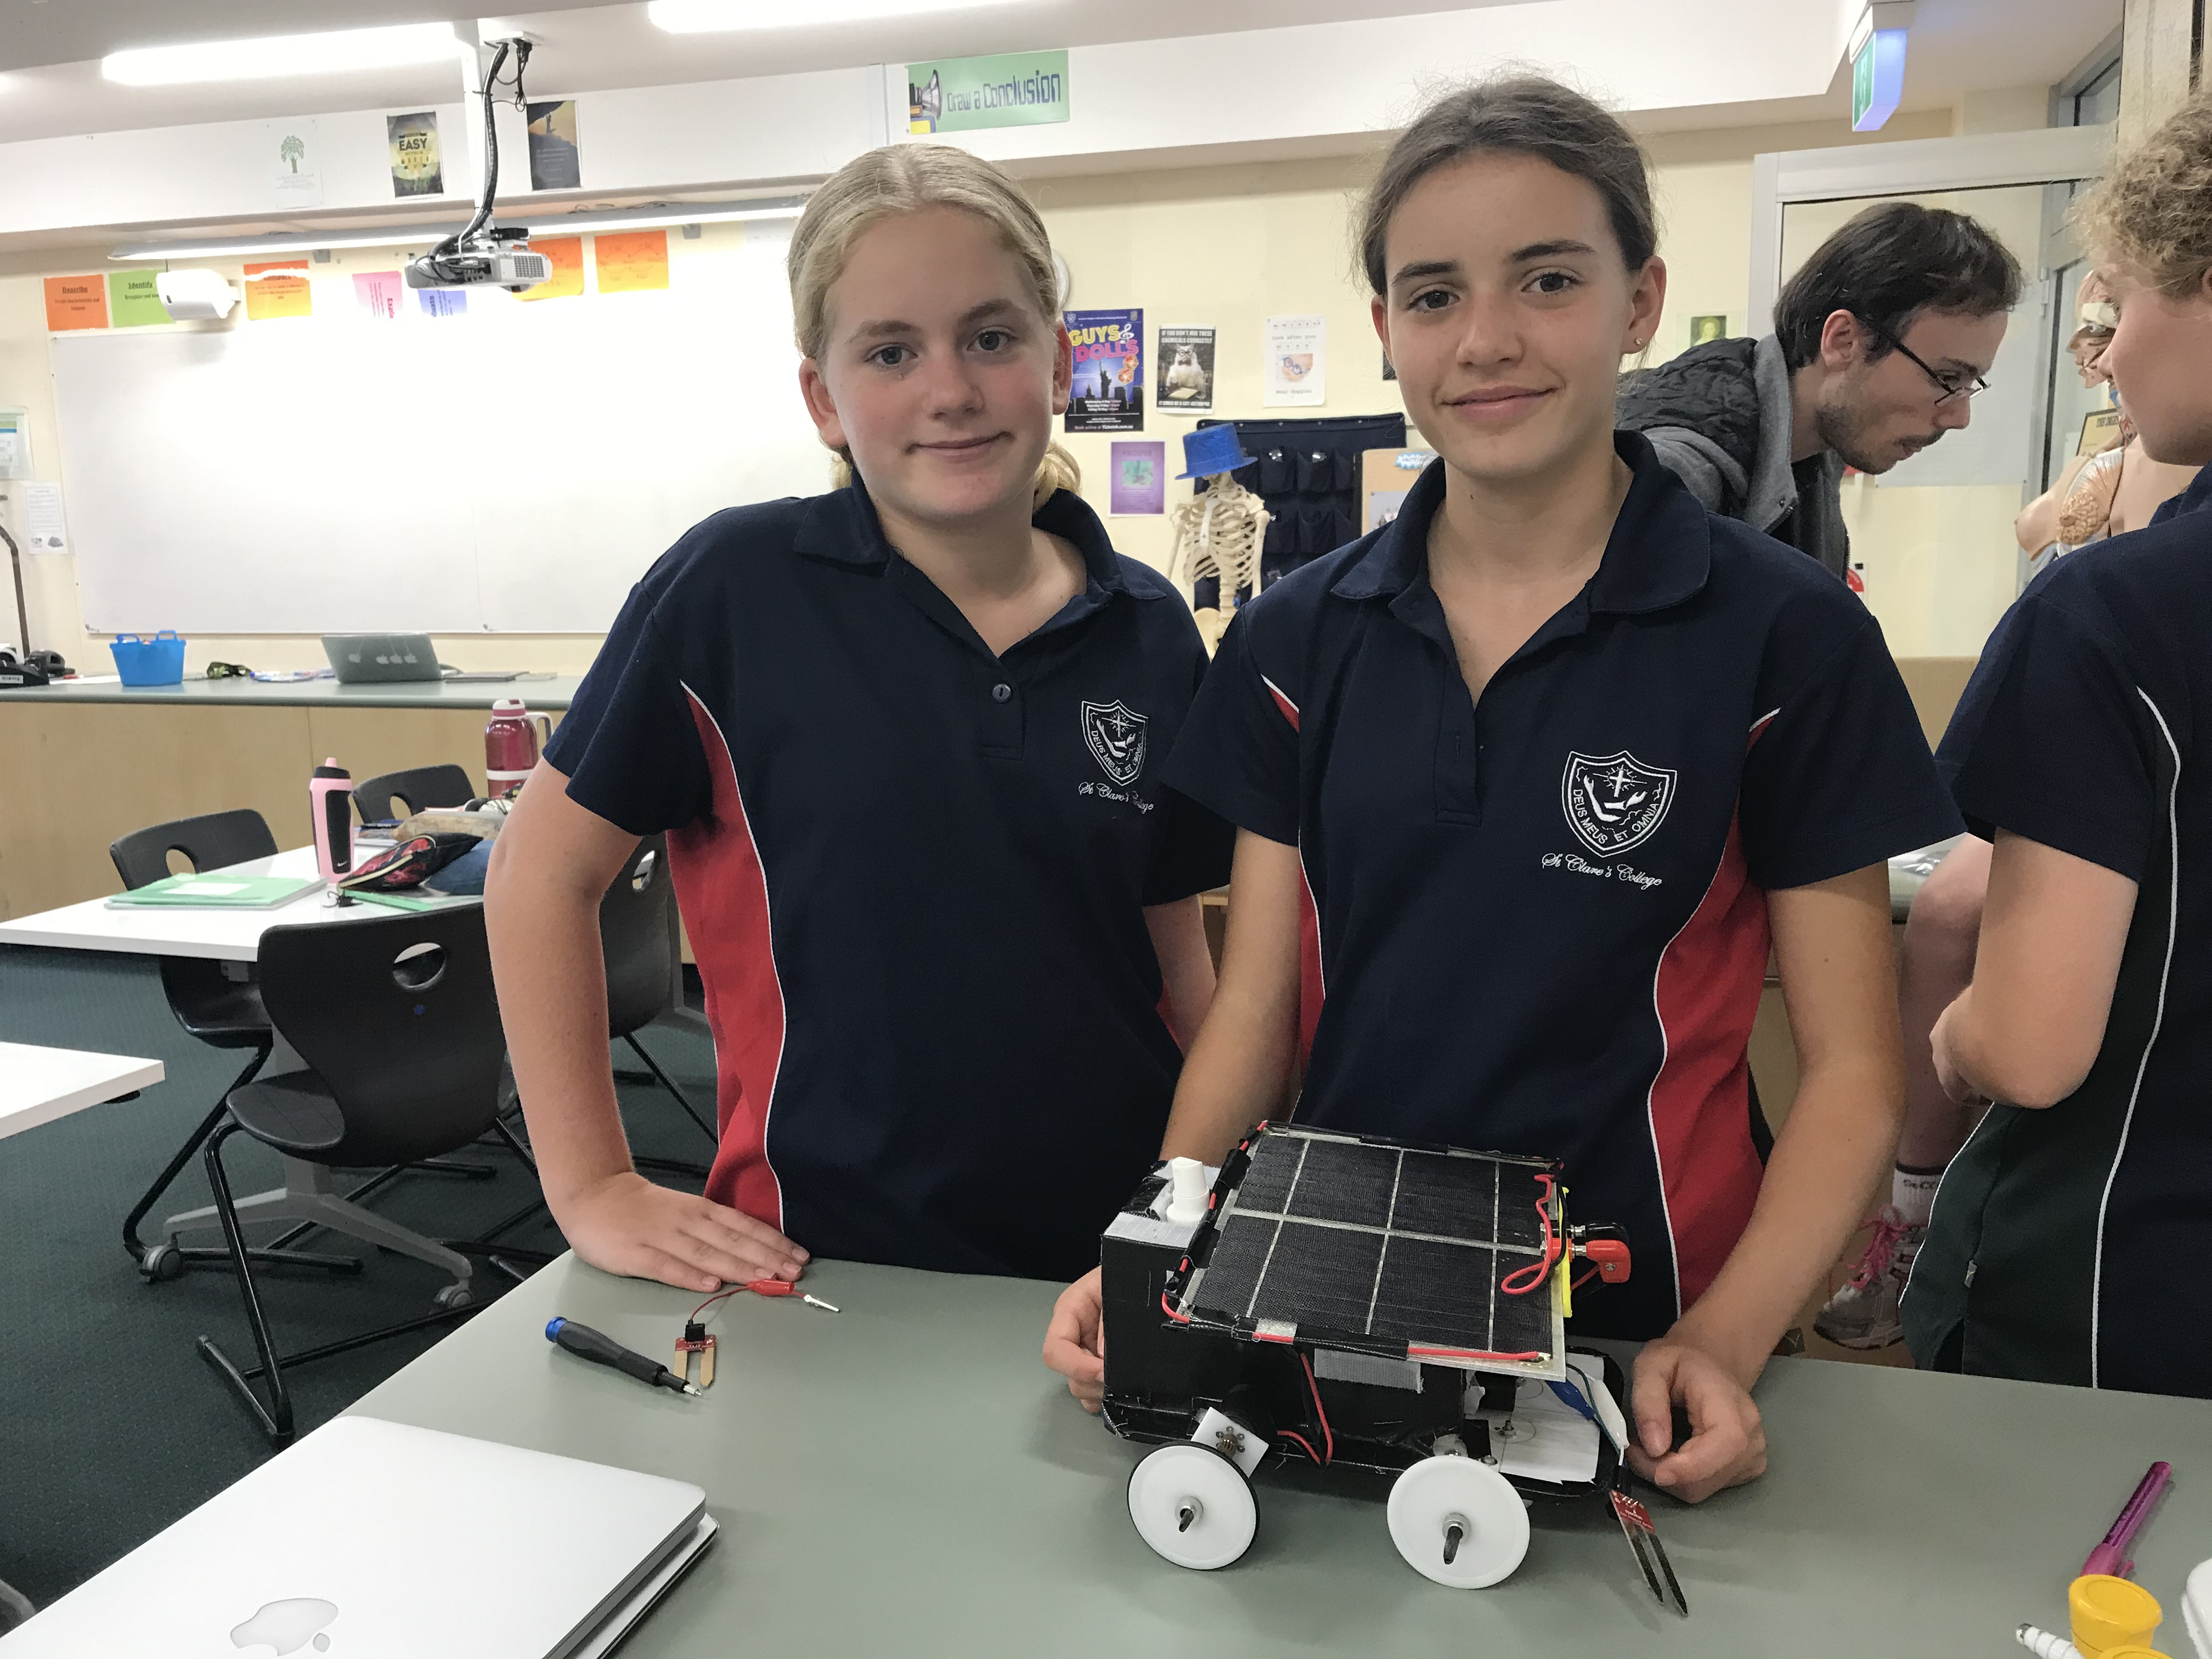 Two students work on their STEAMpunk project